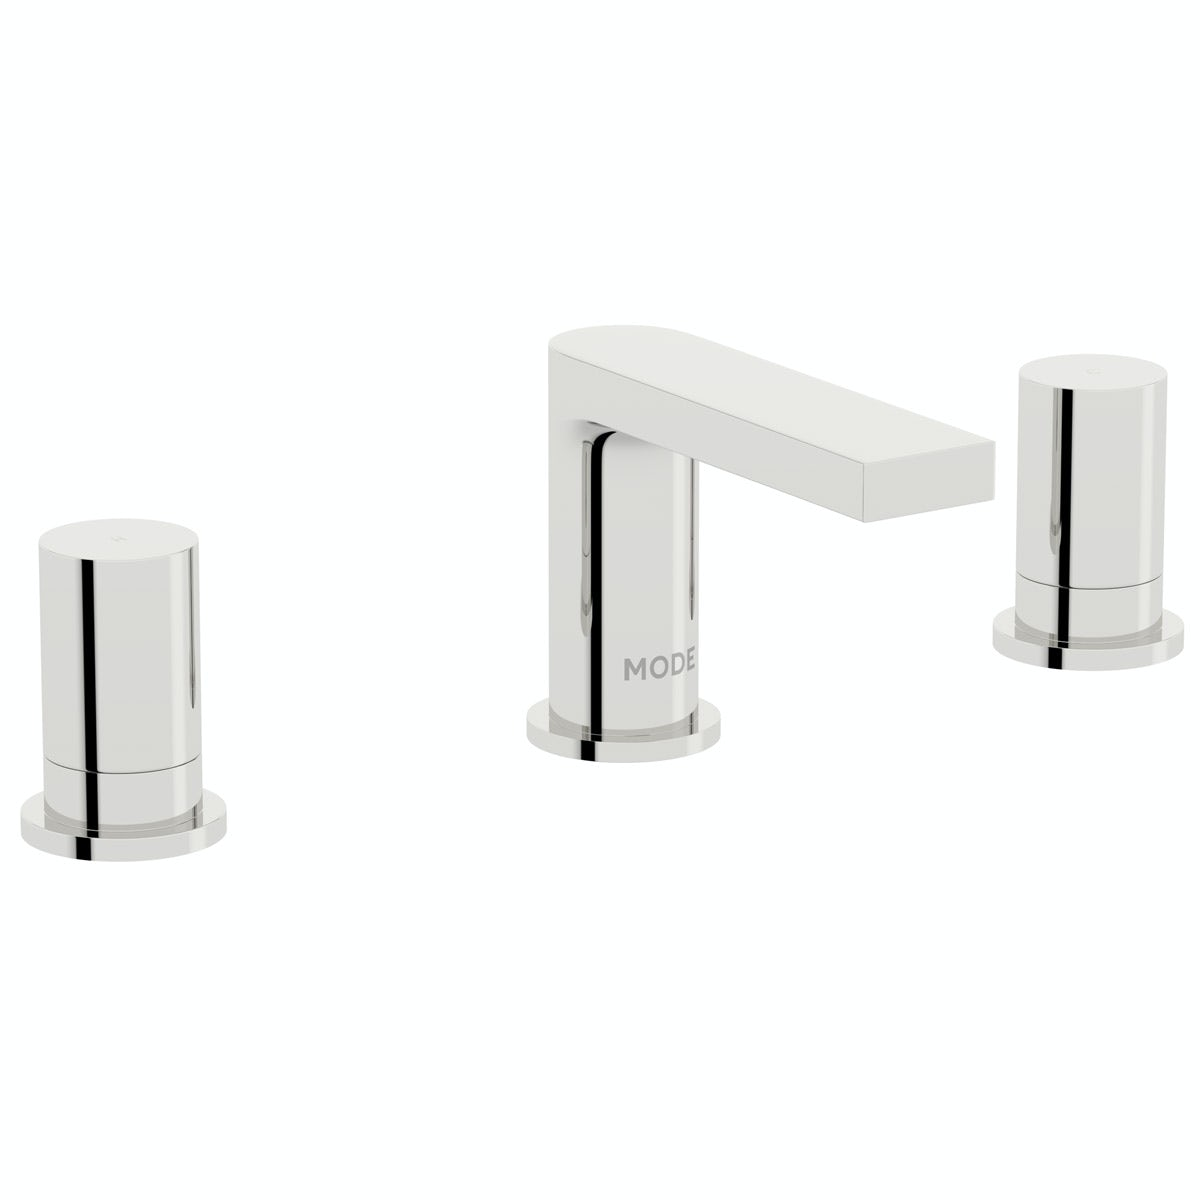 Mode Doshi 3 hole basin mixer tap